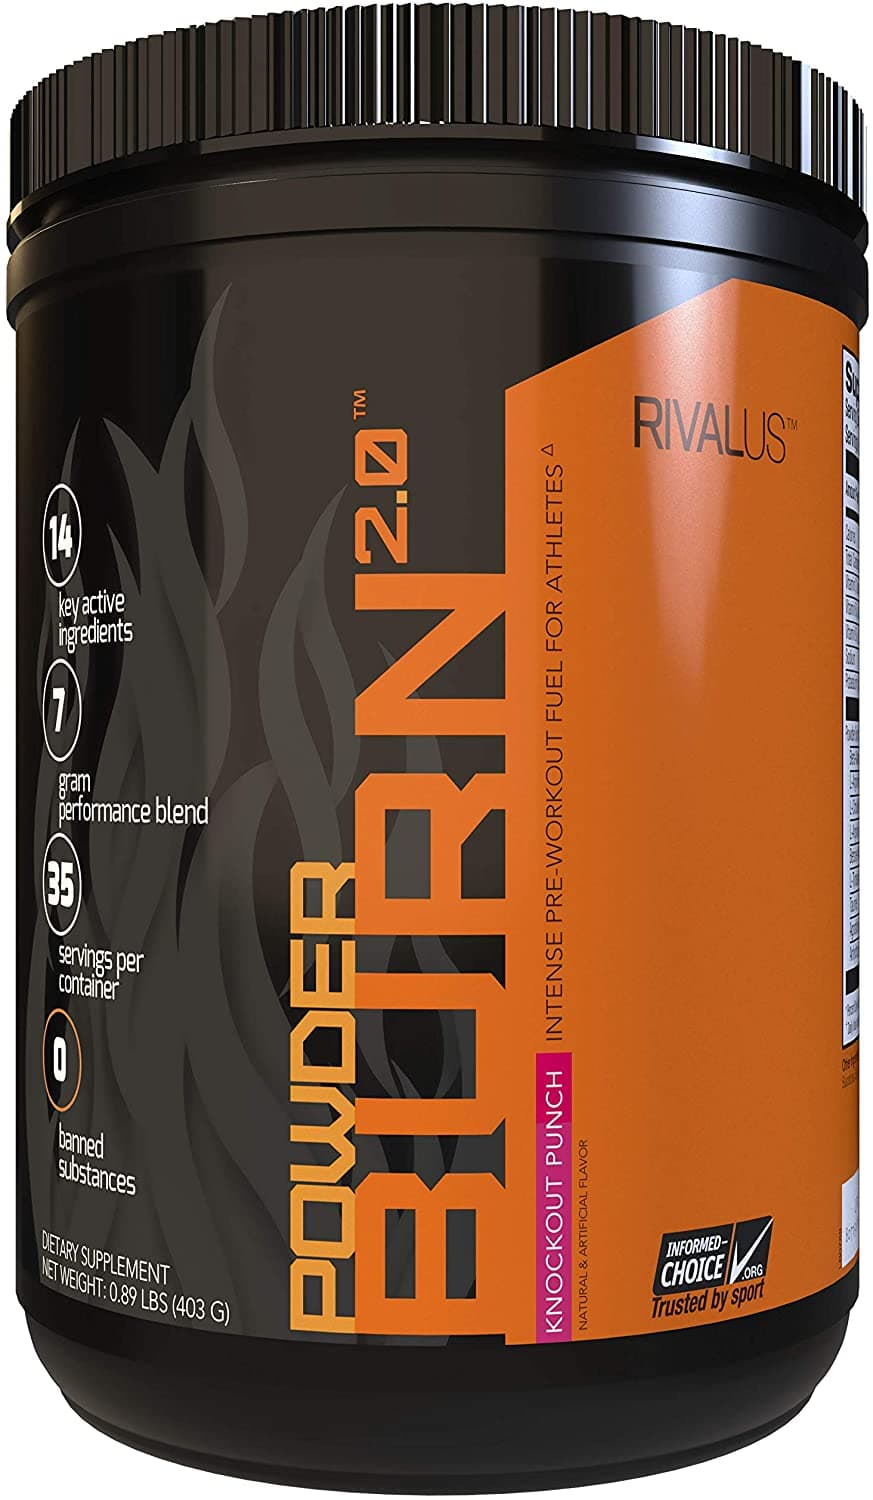 RIVALUS Powder Burn 2.0 Punch 35 Serving